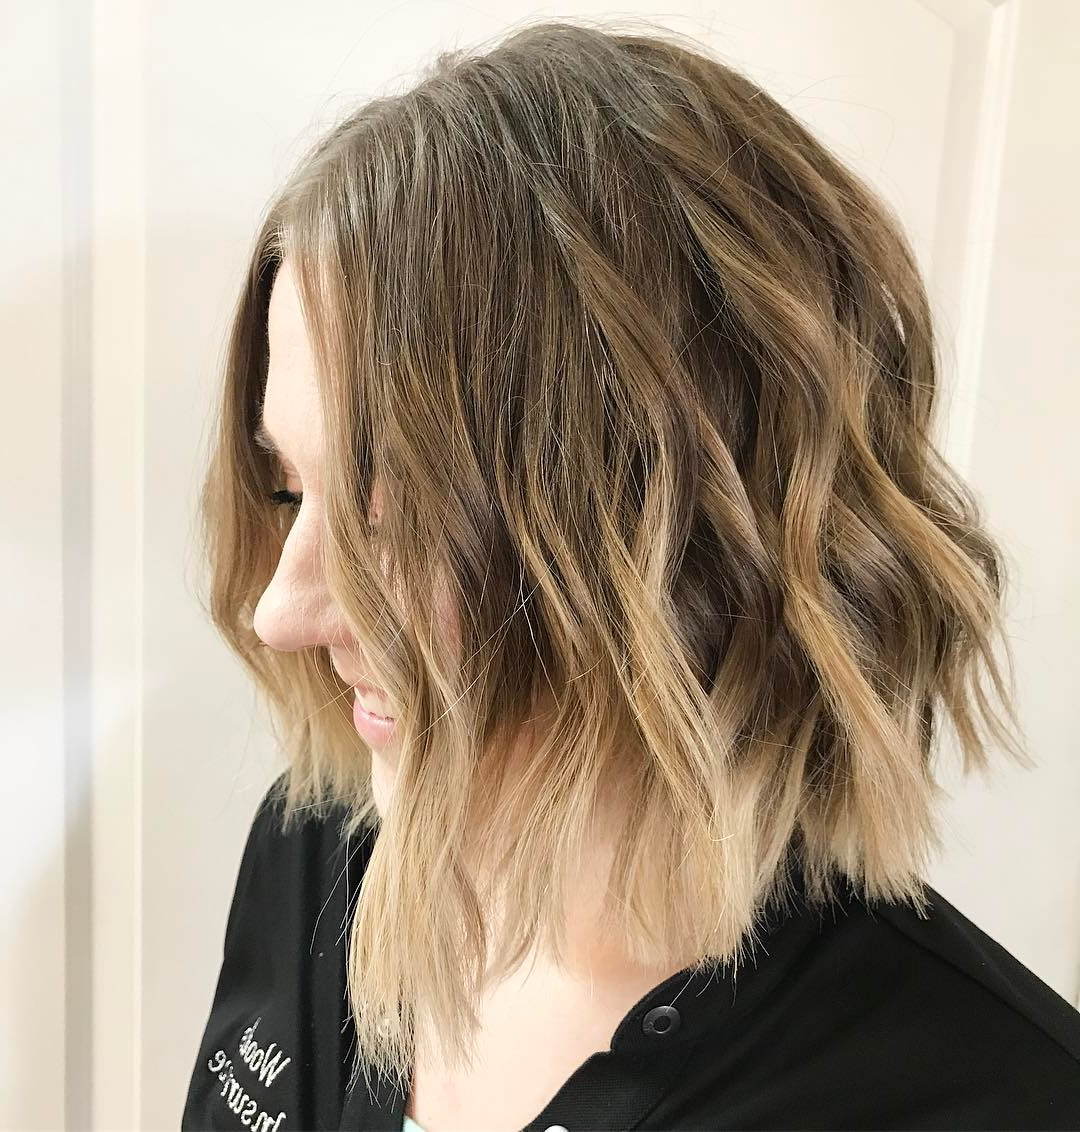 40 Super Cute Short Bob Hairstyles For Women 2018 | Styles Weekly Inside Inverted Brunette Bob Hairstyles With Feathered Highlights (View 4 of 20)